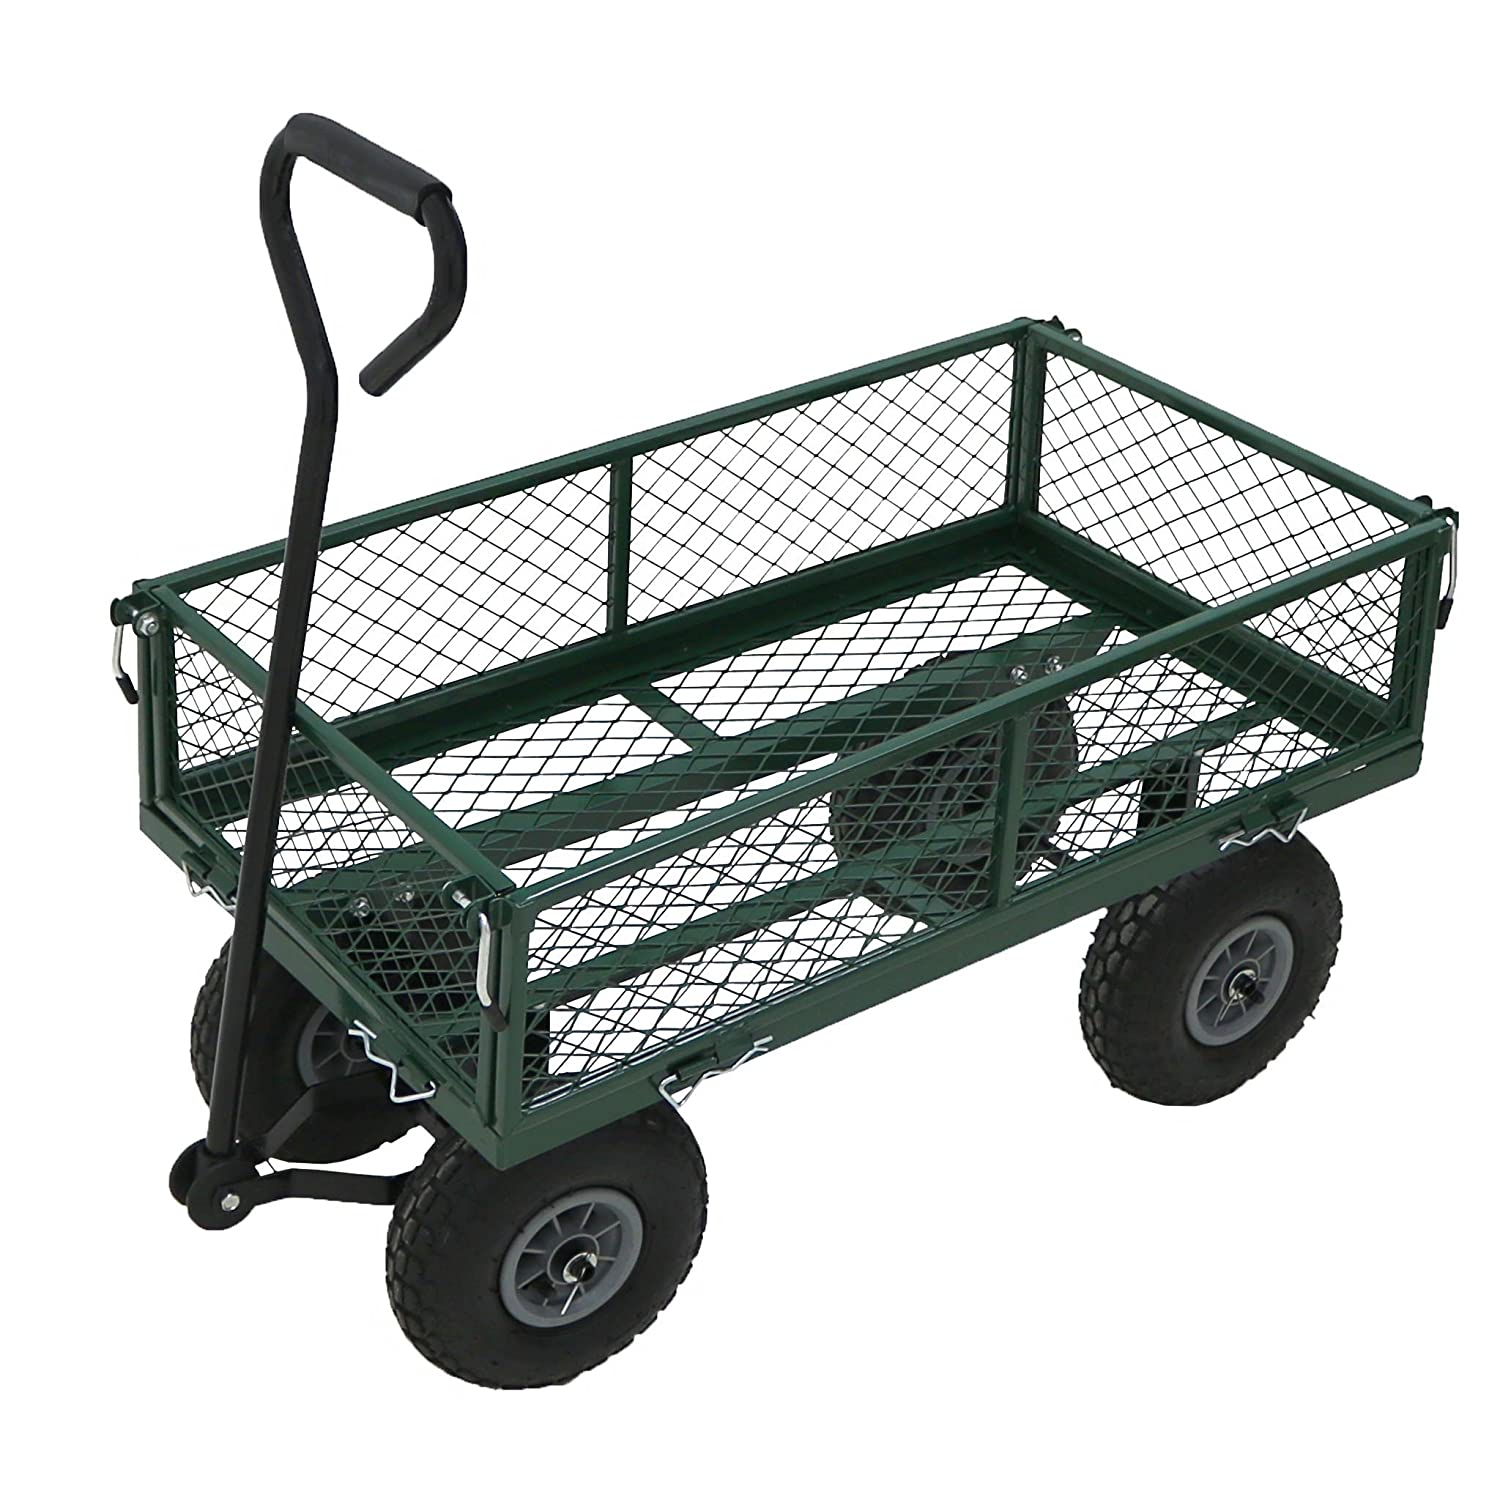 Oypla Heavy Duty Metal Gardening Trolley - Green Trailer Cart 3053OYP